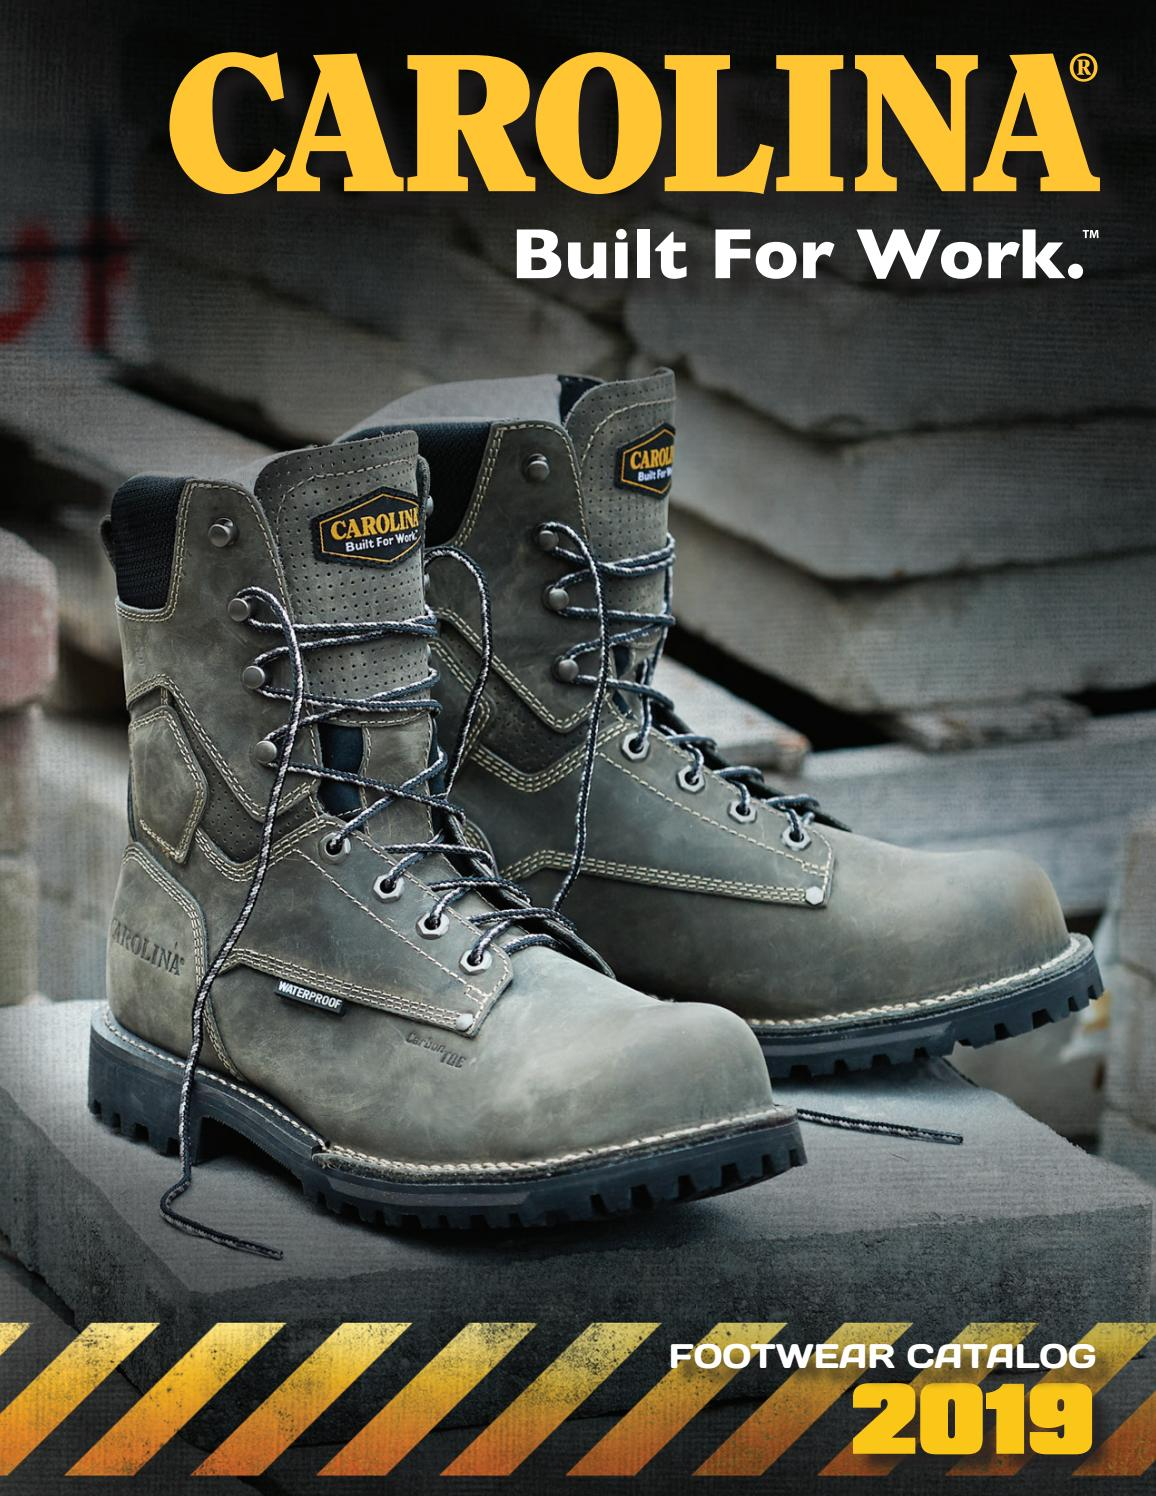 a7e75204bc7 2019 Carolina Catalog by HH Brown Work & Outdoor Group - issuu